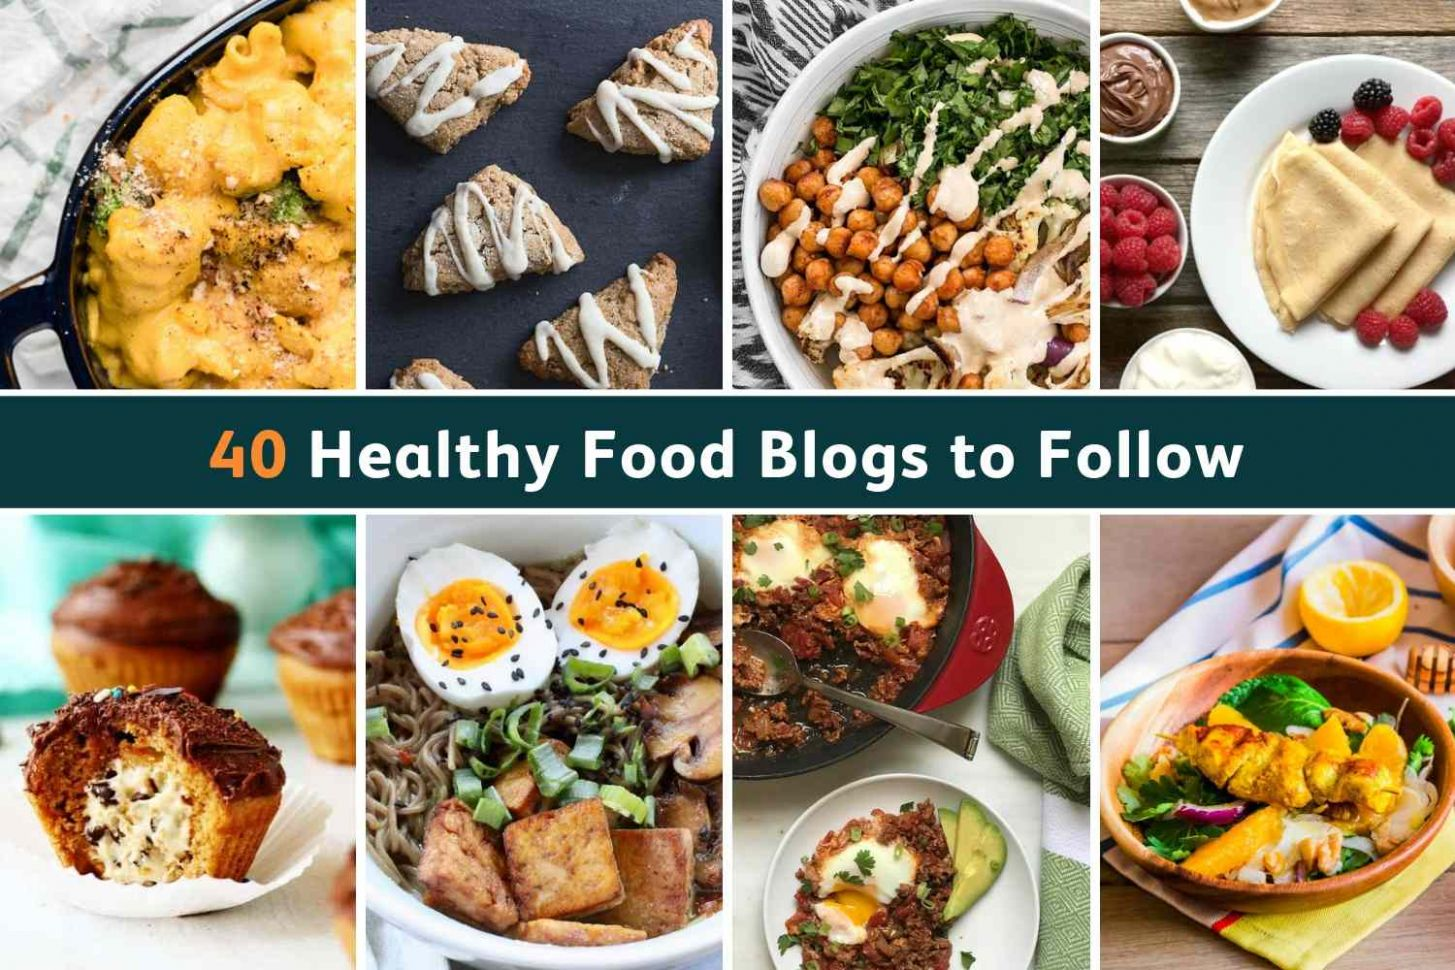 The 12 Best Healthy Food Blogs to Follow in 12 - Dinner Recipes Blog